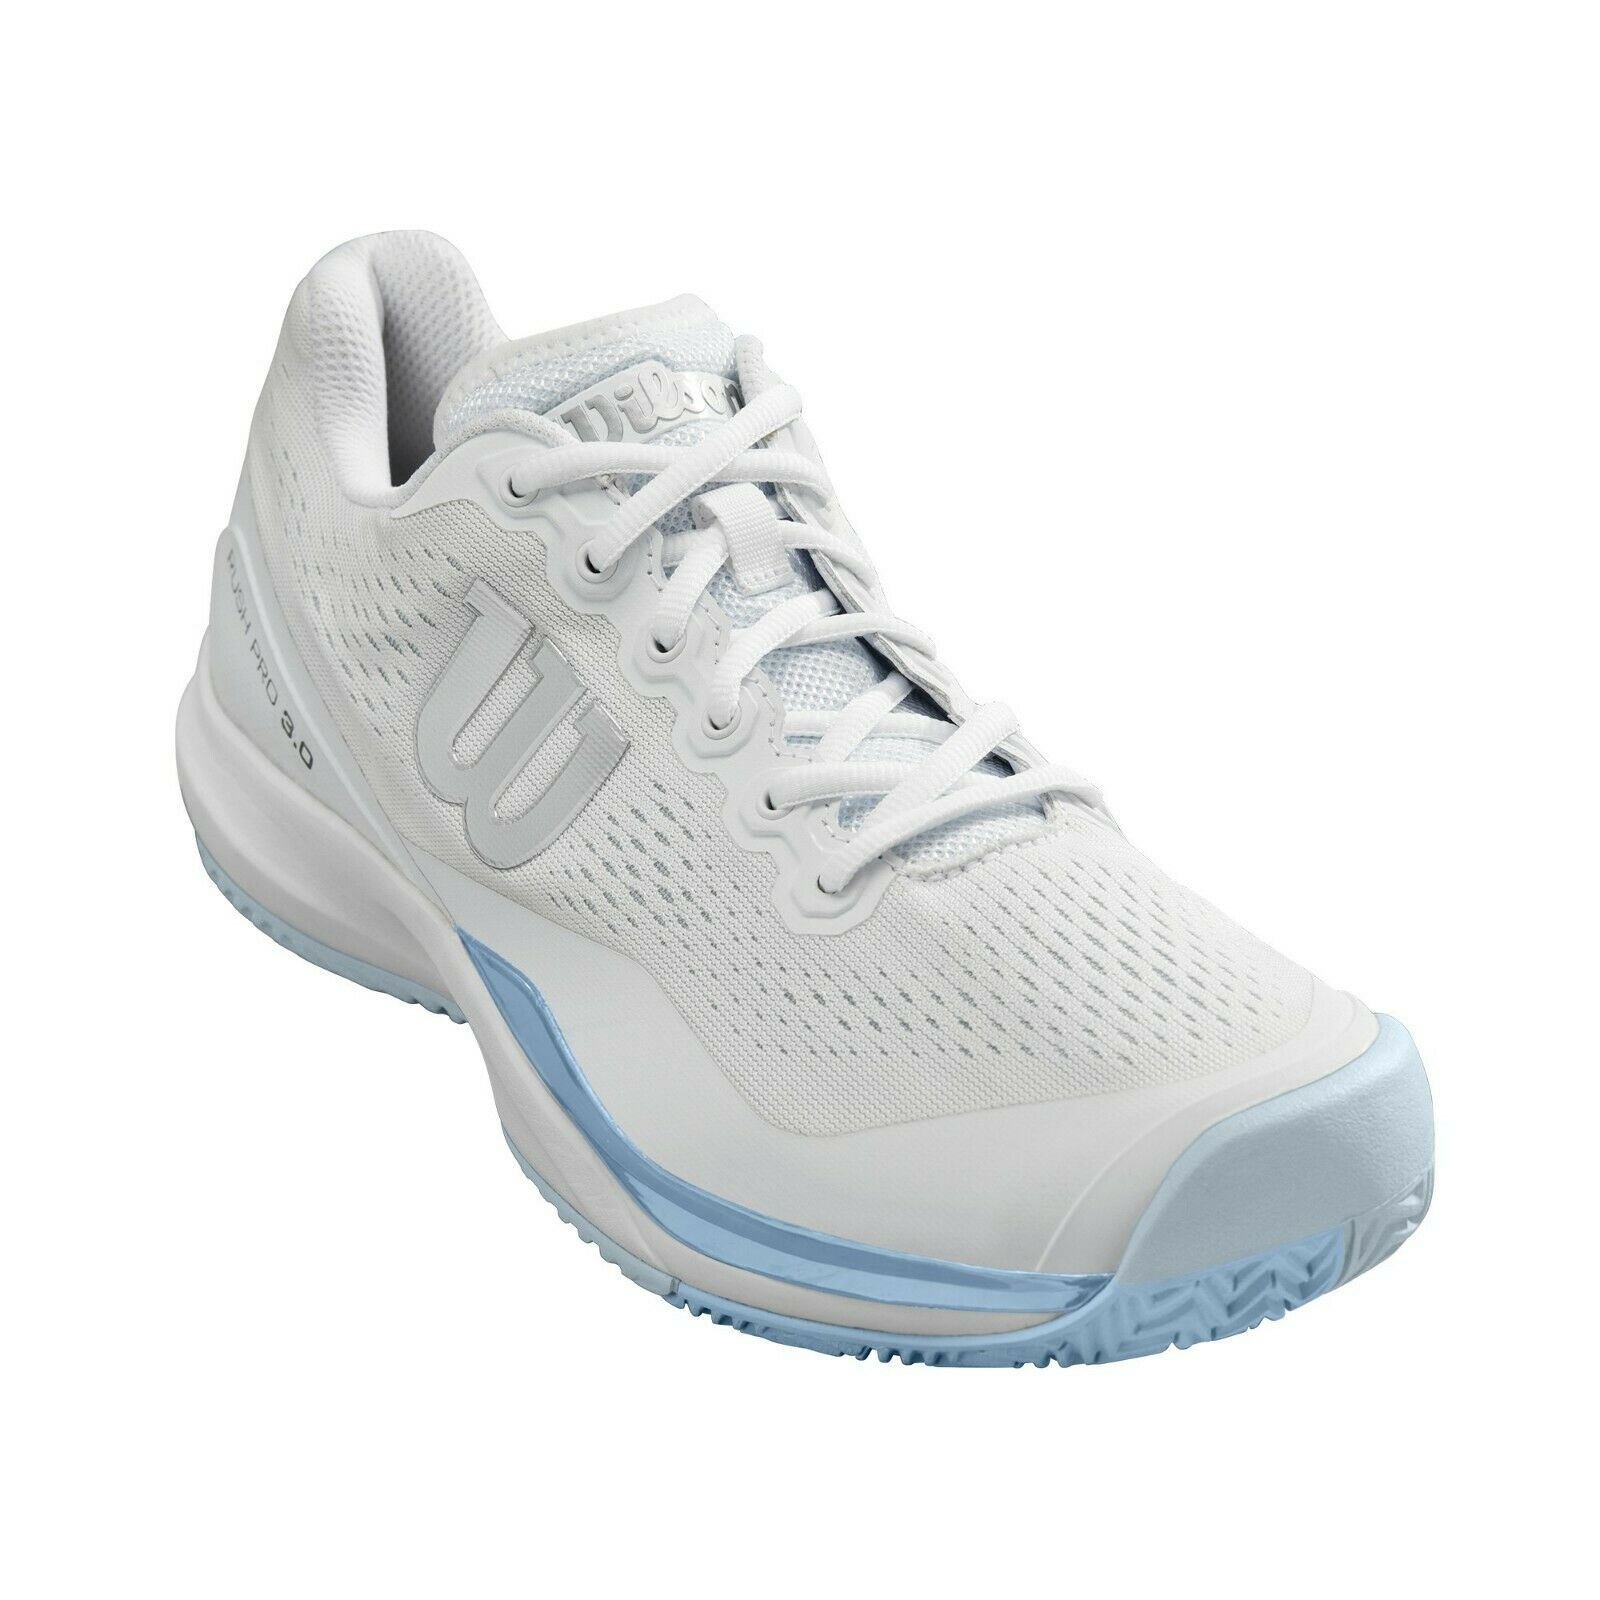 Purchase of Wilson Willson rush Pro 3.0 womens tennis shoes in white and blue